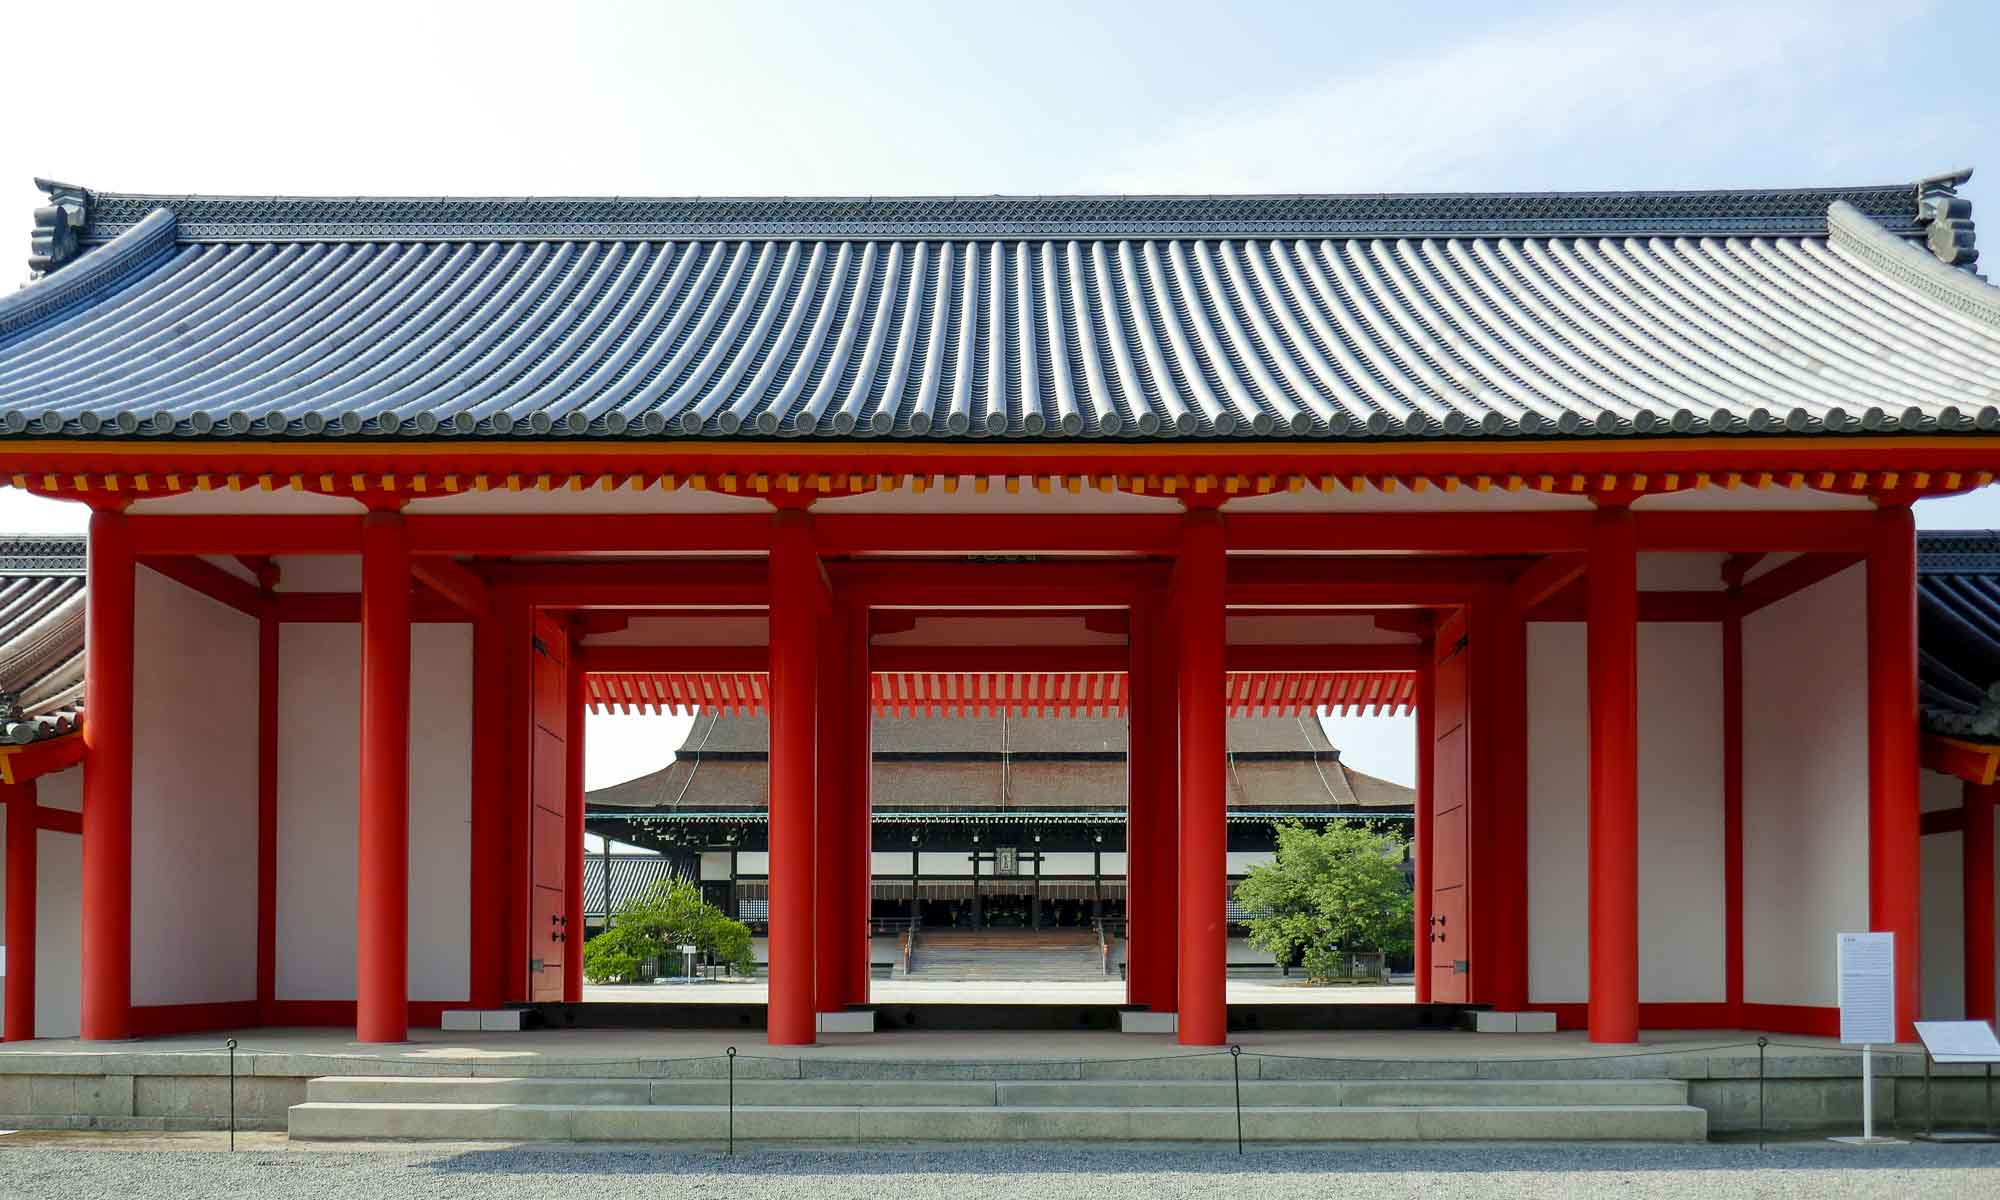 Jomeimon Gate to Shishinden (hall for state ceremonies)